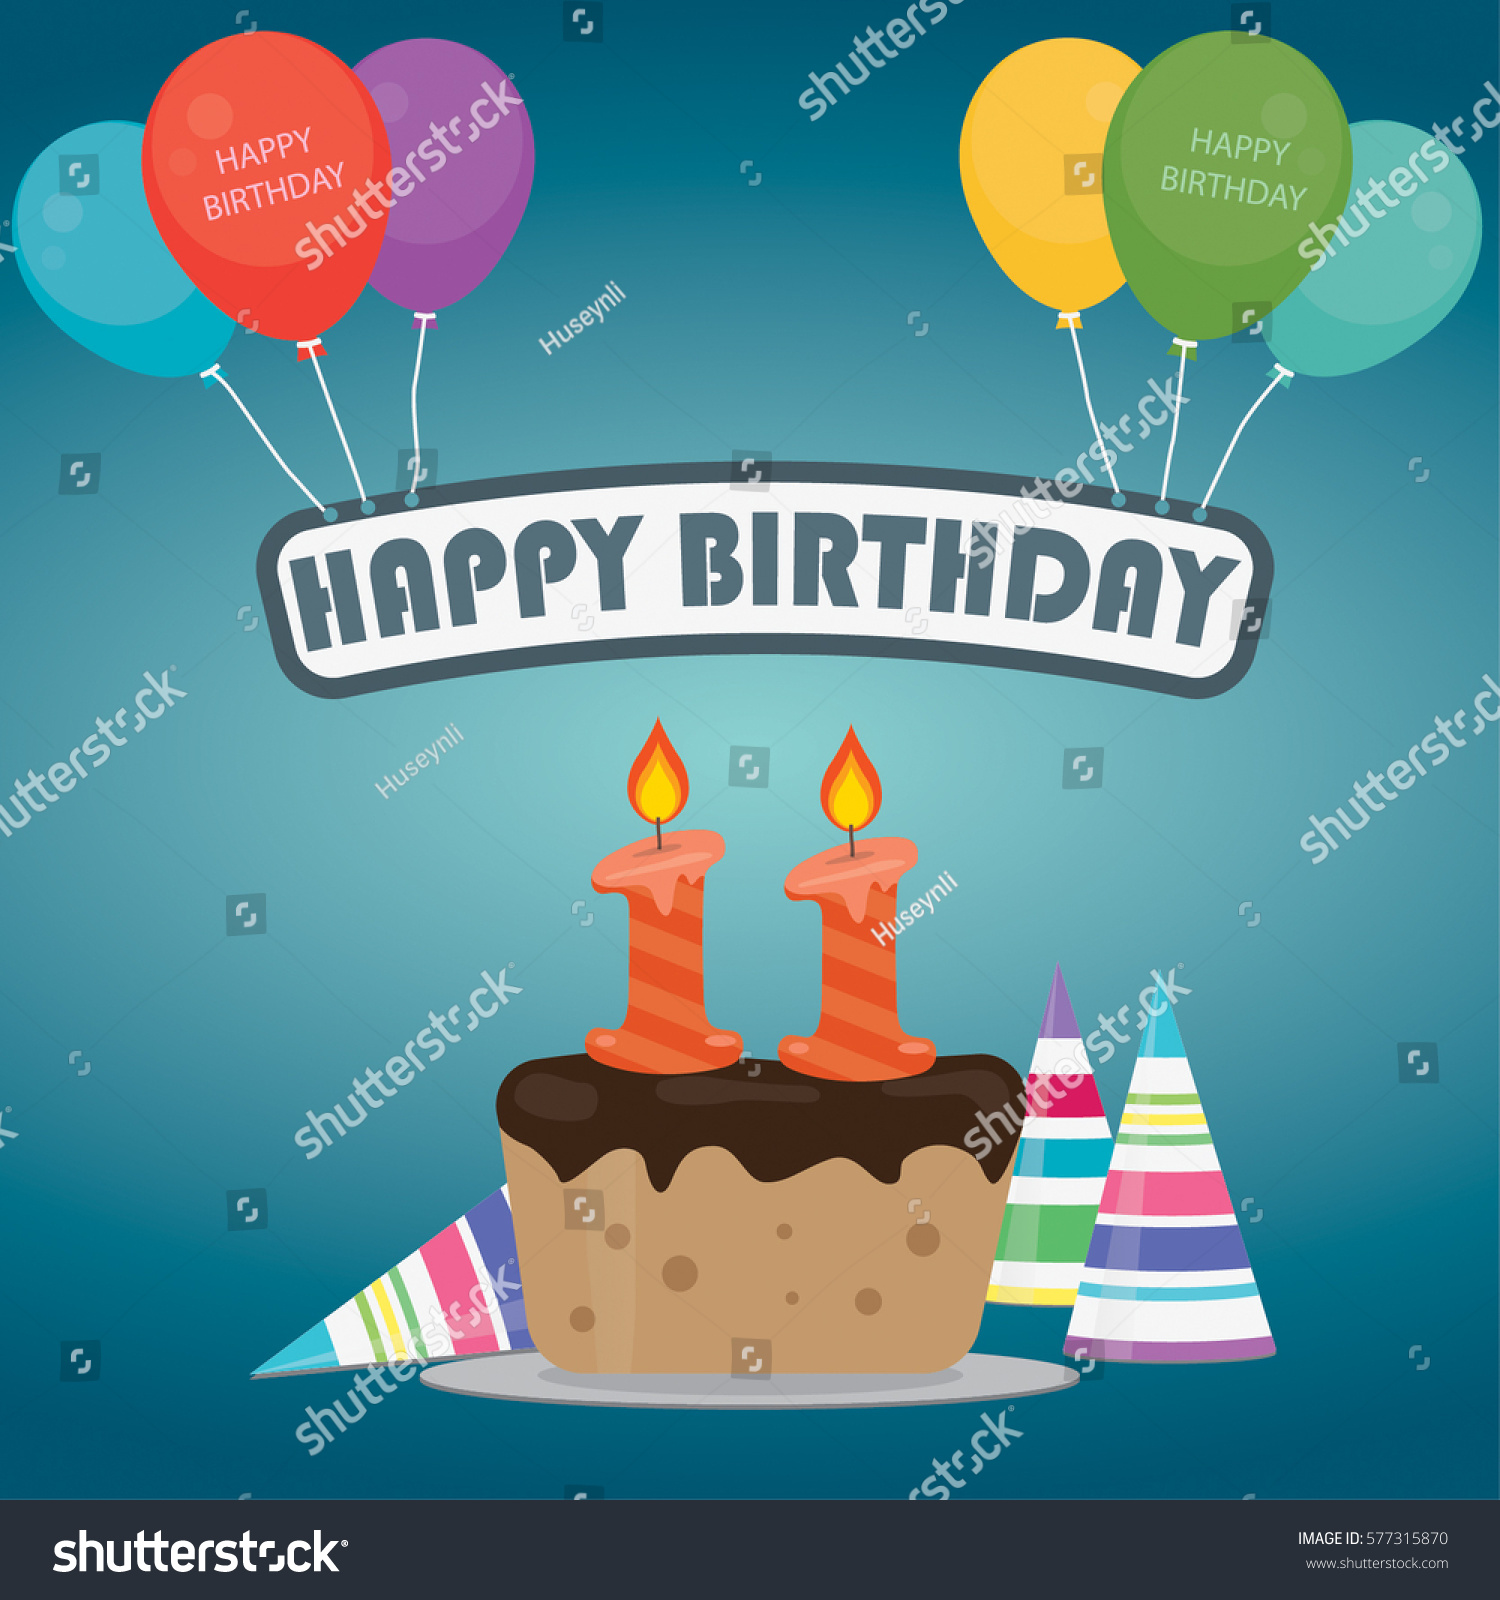 https www shutterstock com image vector birthday cake candle number 11 flat 577315870